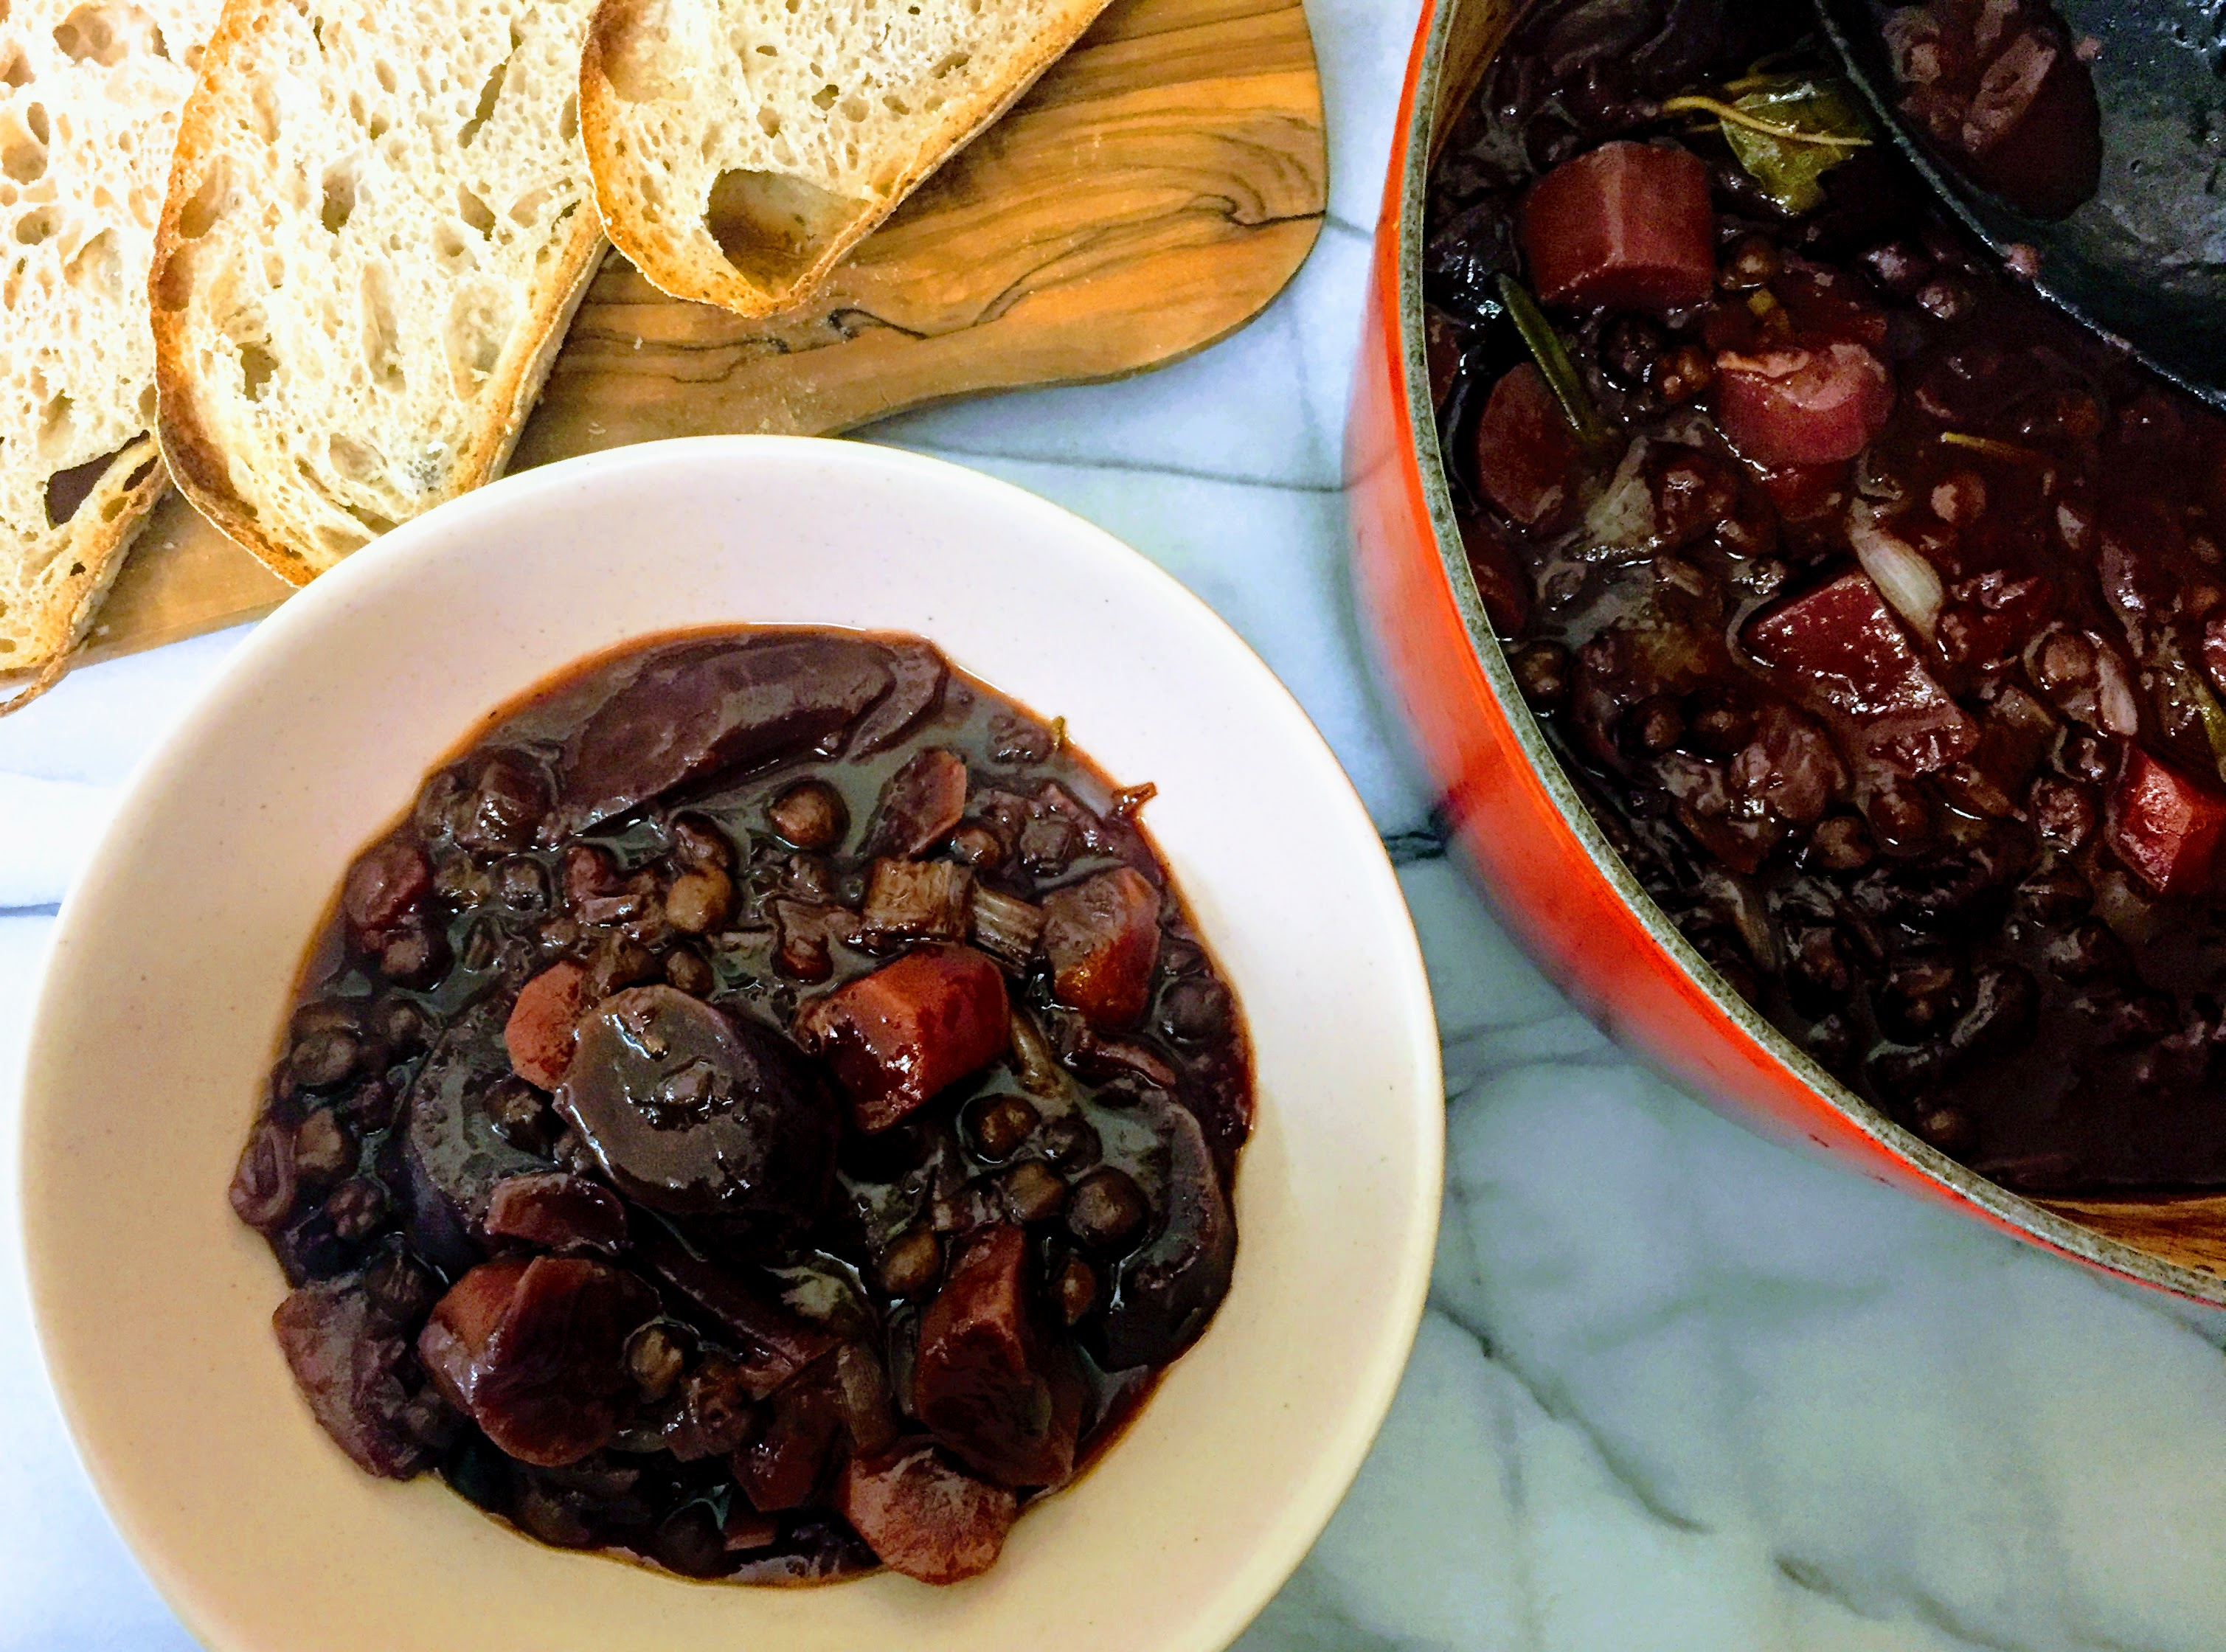 A bowl of chickpeas au vin seen from above. The stew has an intensely dark red wine colour, an there are large chunks of purple carrots surrounded by chickpeas, all drenched in smooth, dark and glossy gravy. To the right is the casserole dish the remaining stew, and at the top there are some thick slices of sourdough bread on a wooden board.